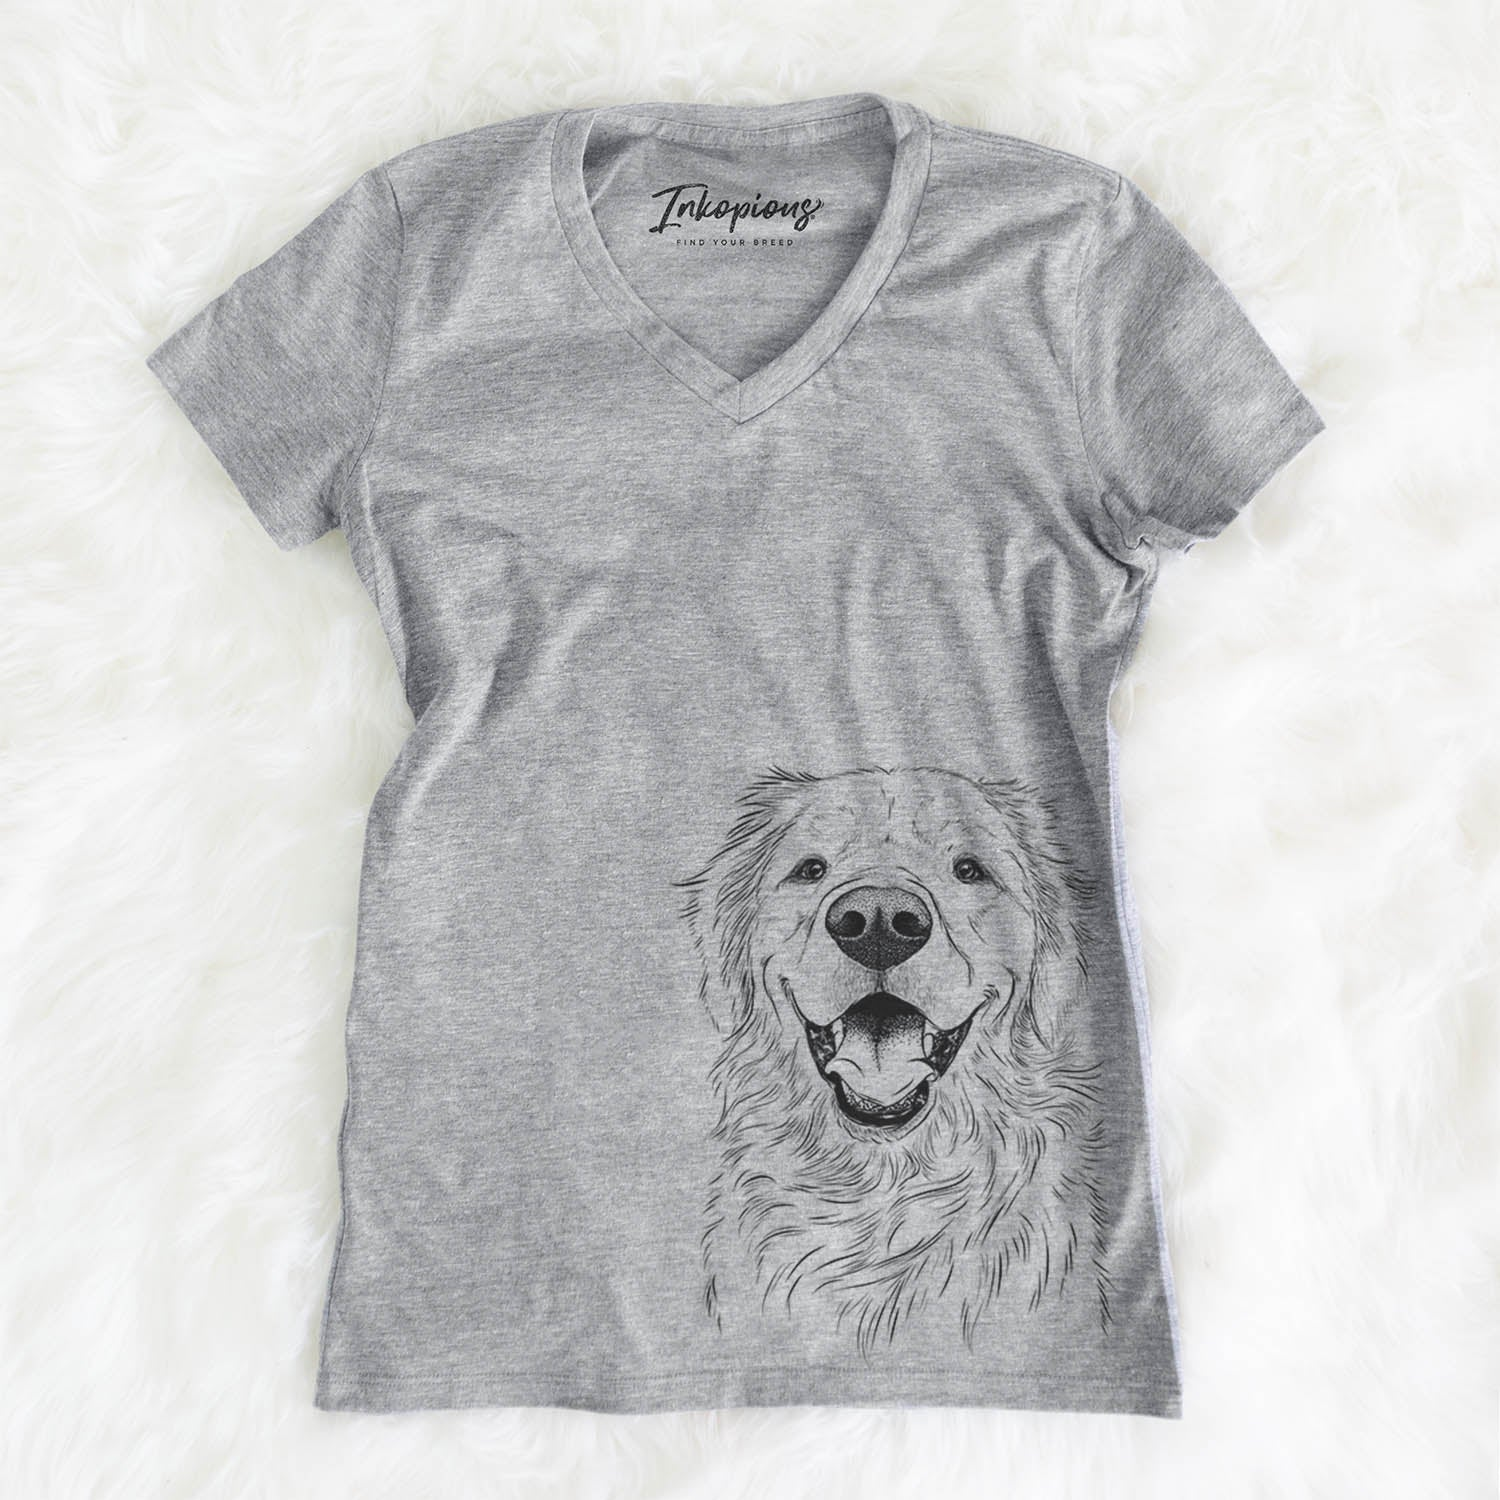 Roger the Golden Retriever - Women's Modern Fit V-neck Shirt